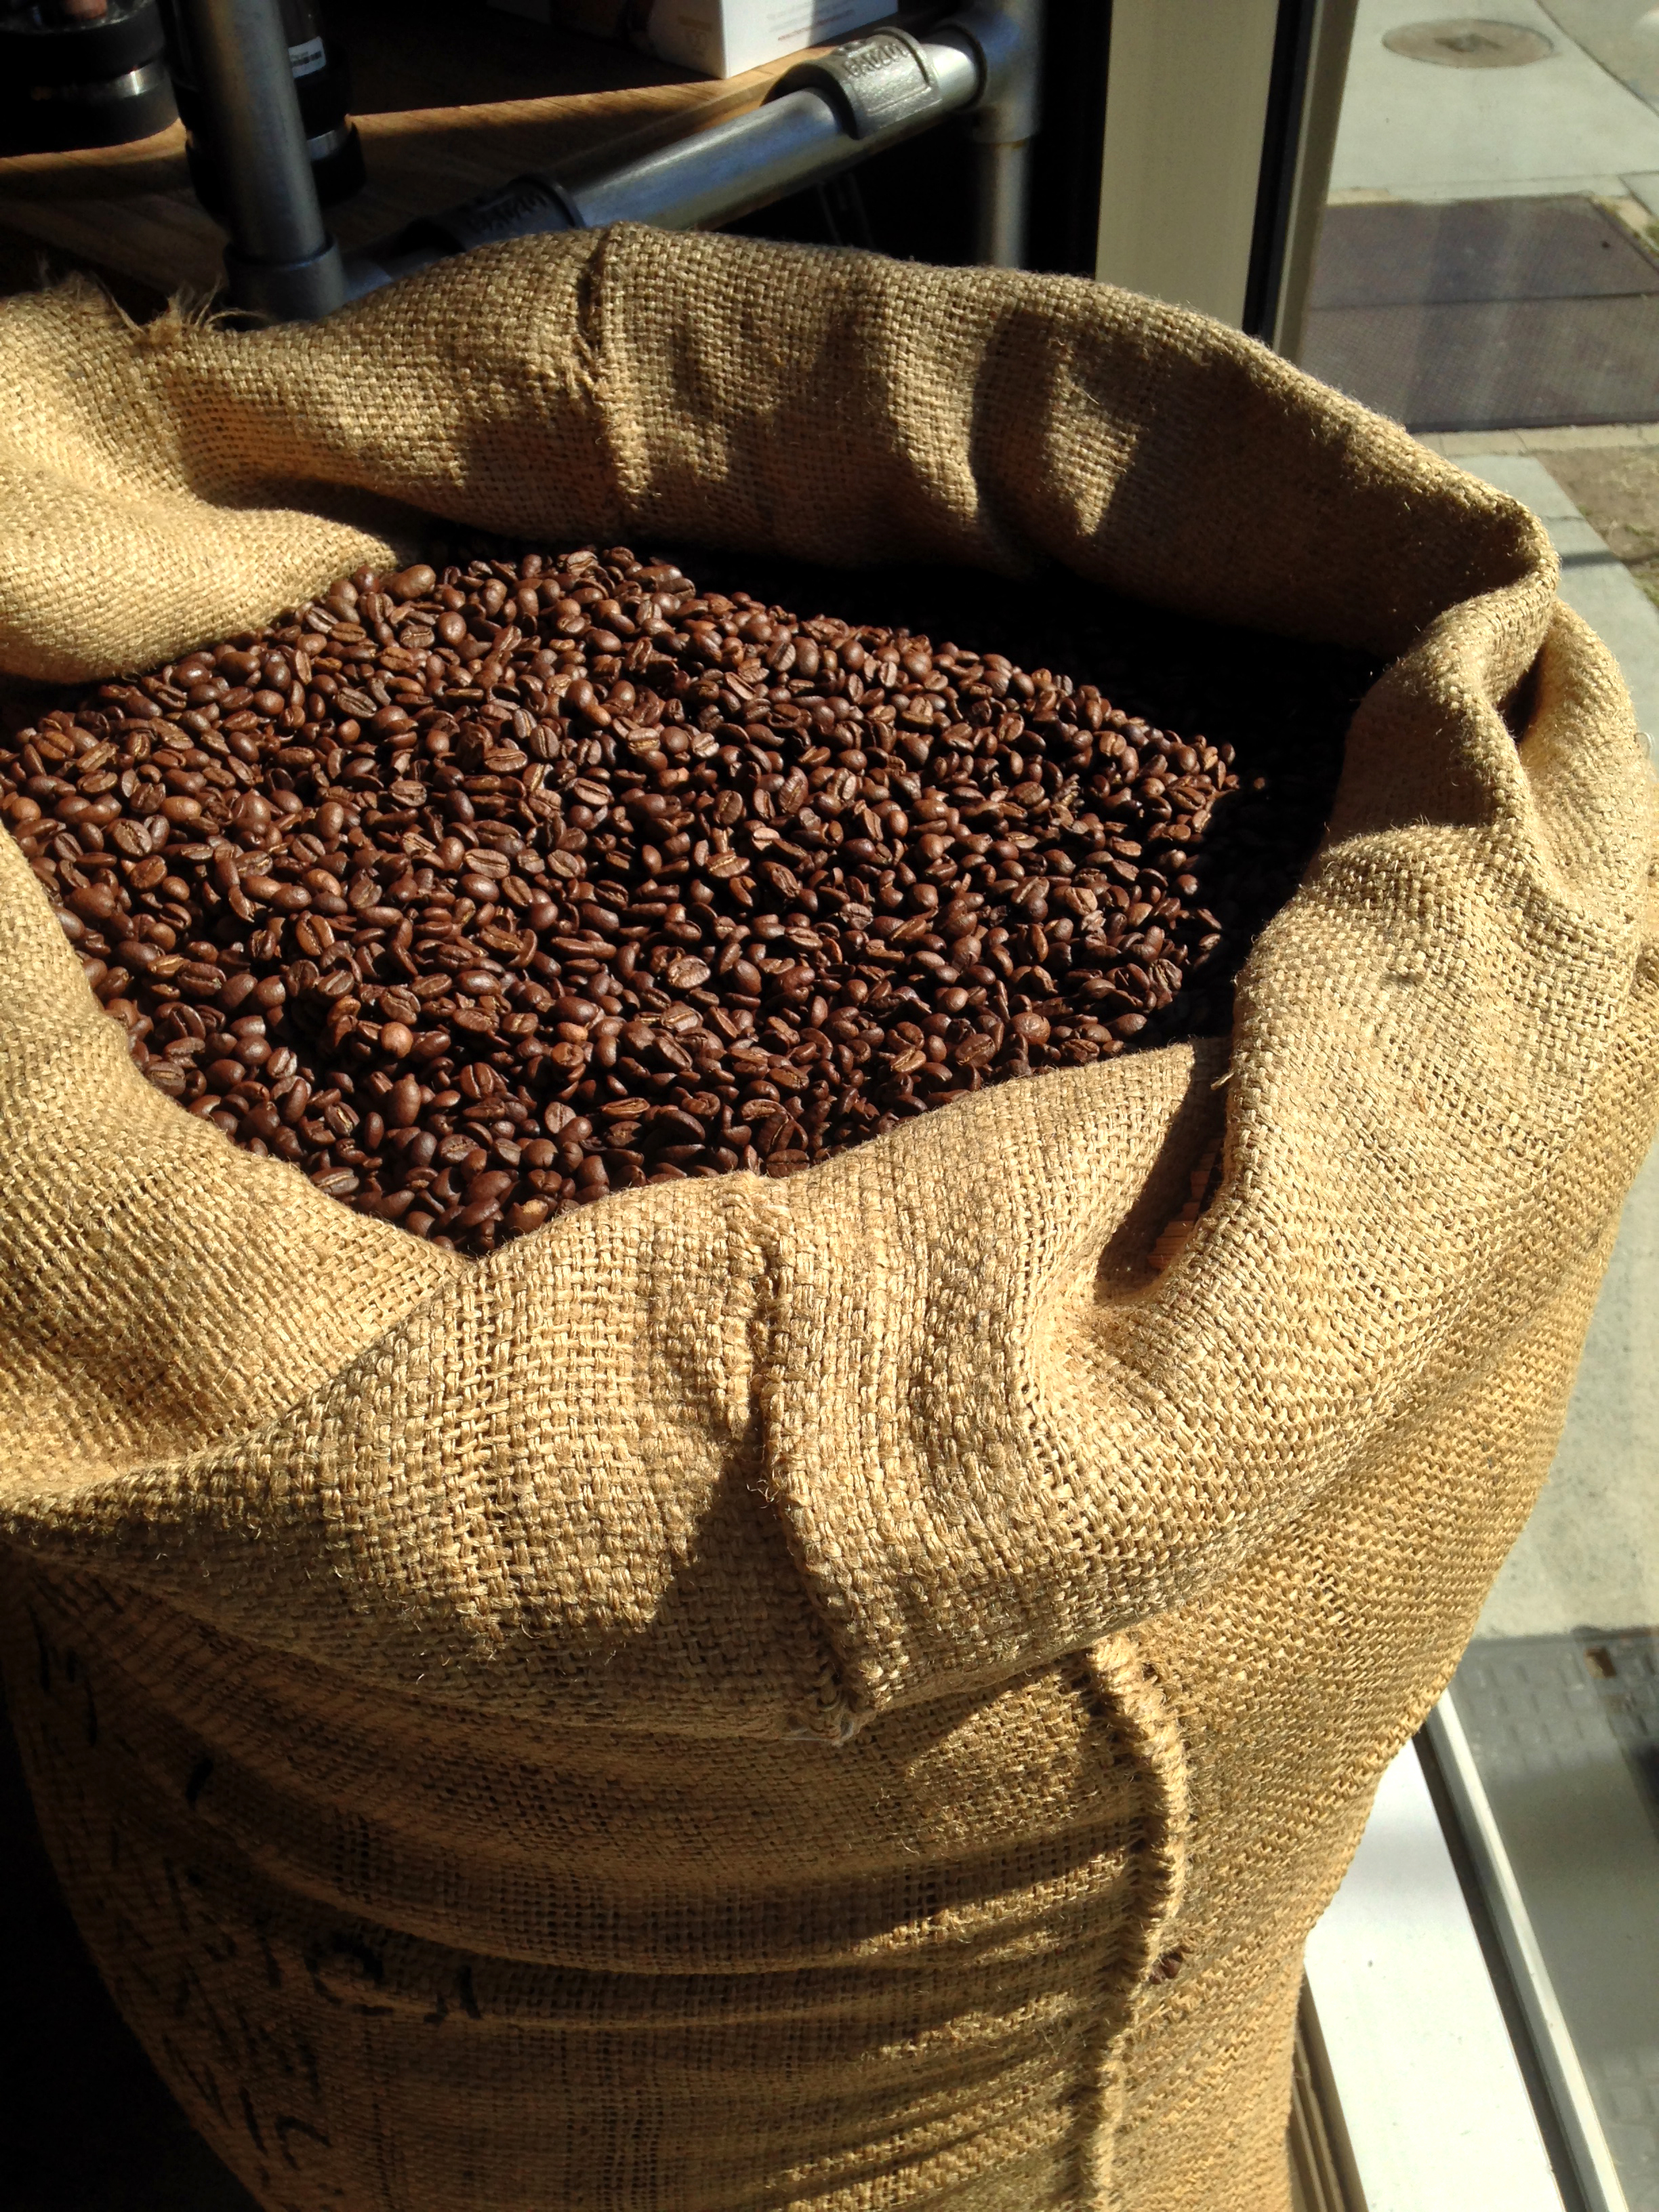 coffee-beans-in-sack-1615042